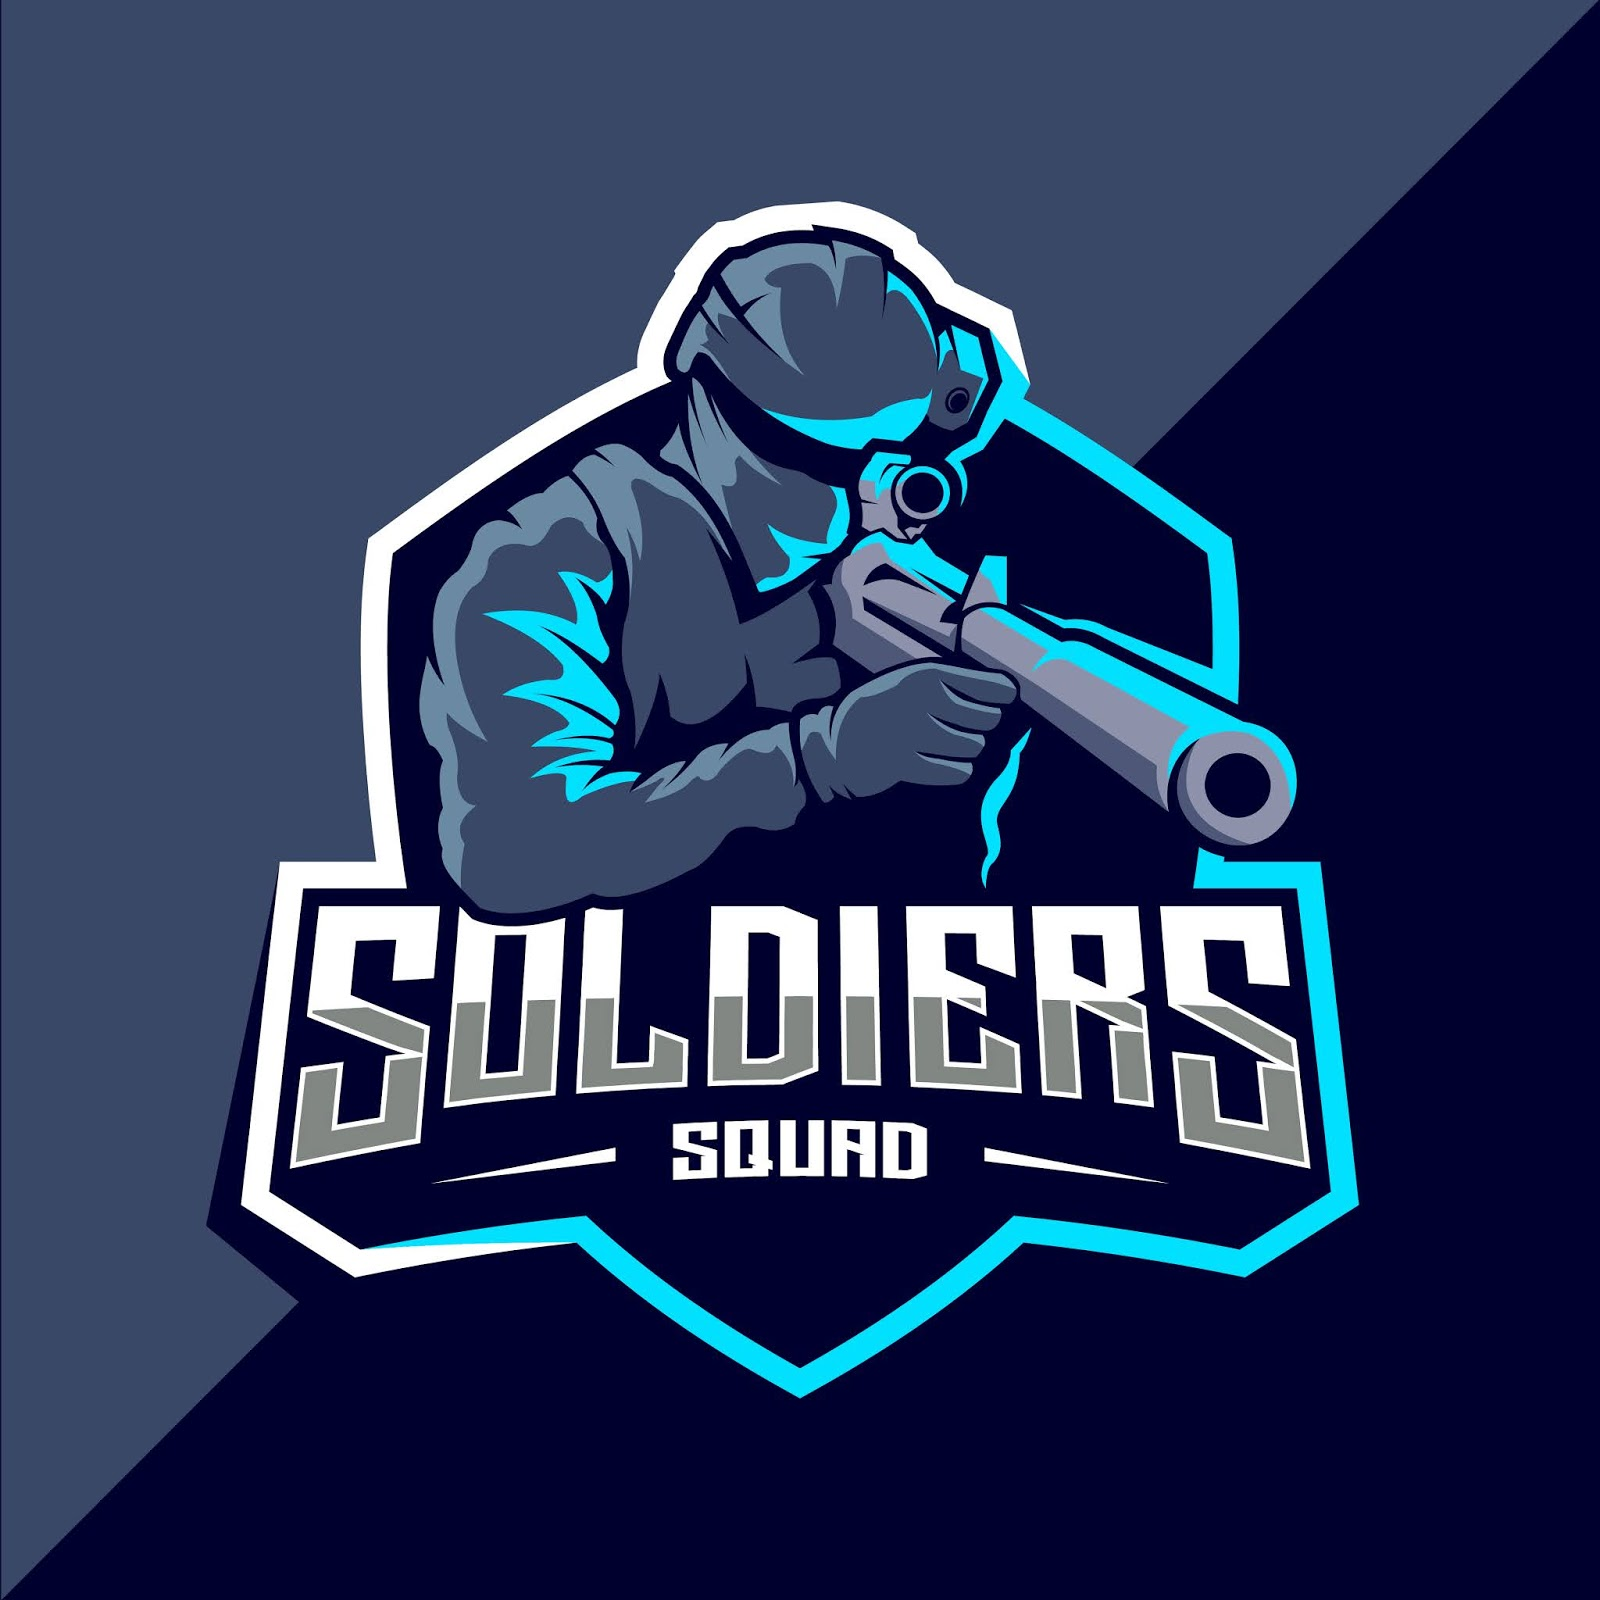 Soldier Mascot Esport Logo Free Download Vector CDR, AI, EPS and PNG Formats